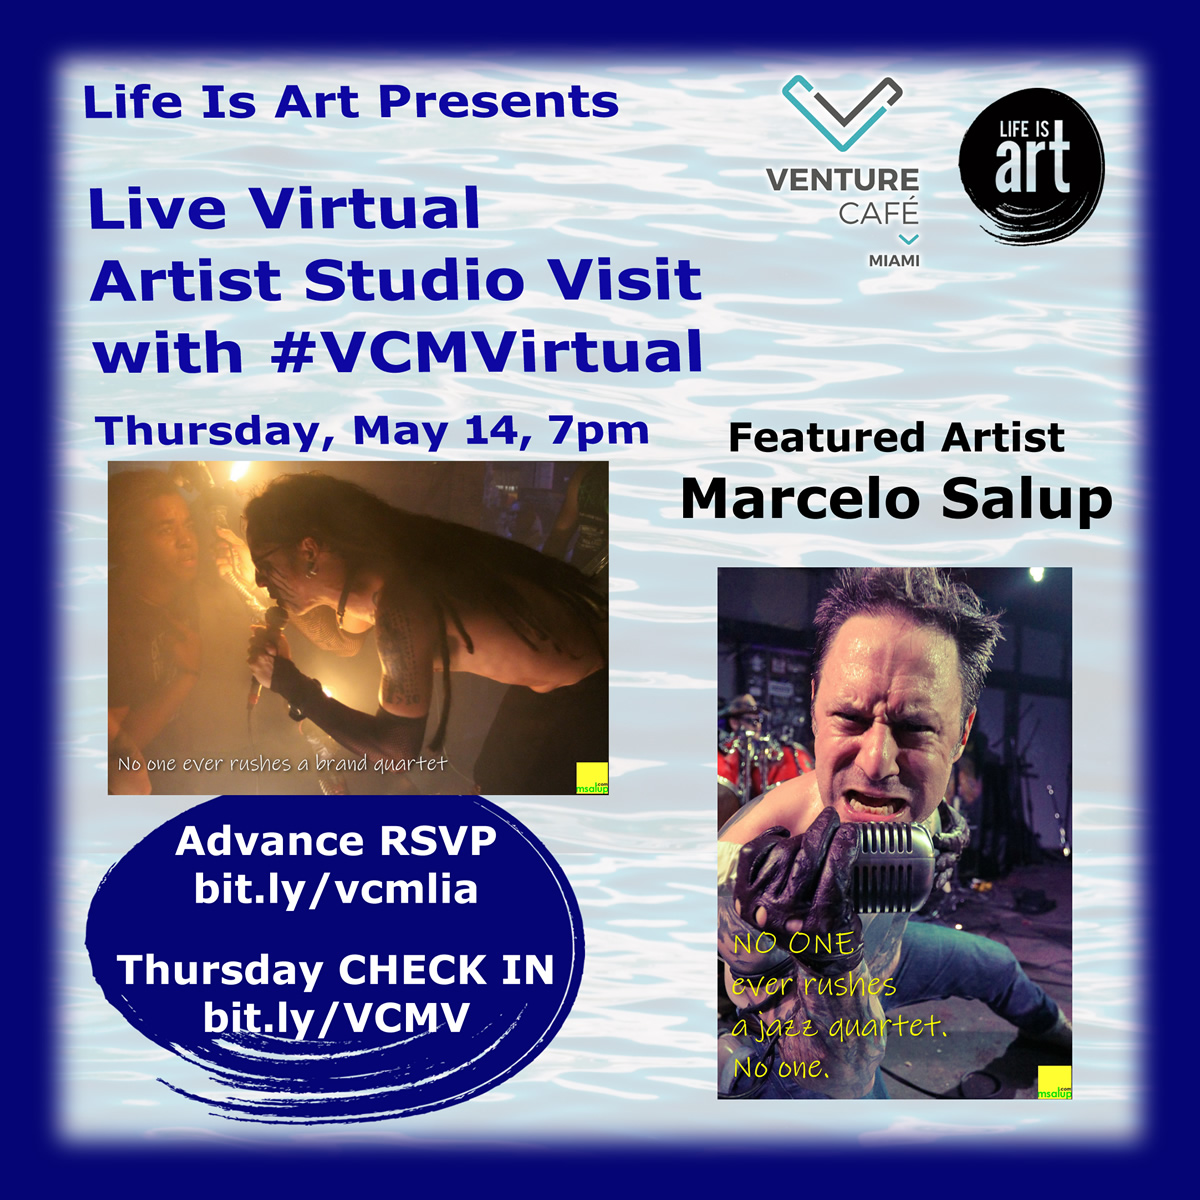 Live Virtual Artist Studio Visit with Marcelo Salup at #VCMVirtual on May 14th